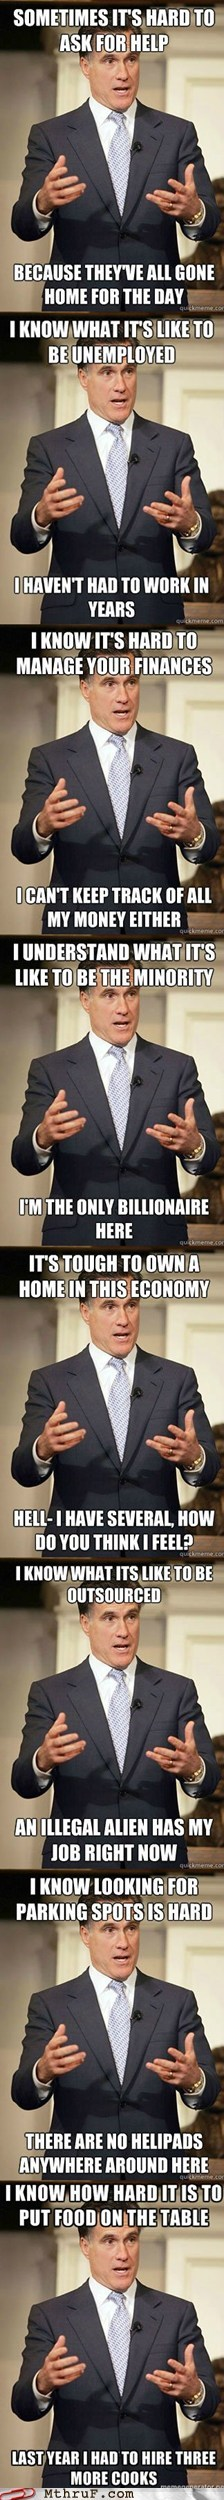 Monday Thru Friday: Oh Mitt, You Know Us All Too Well